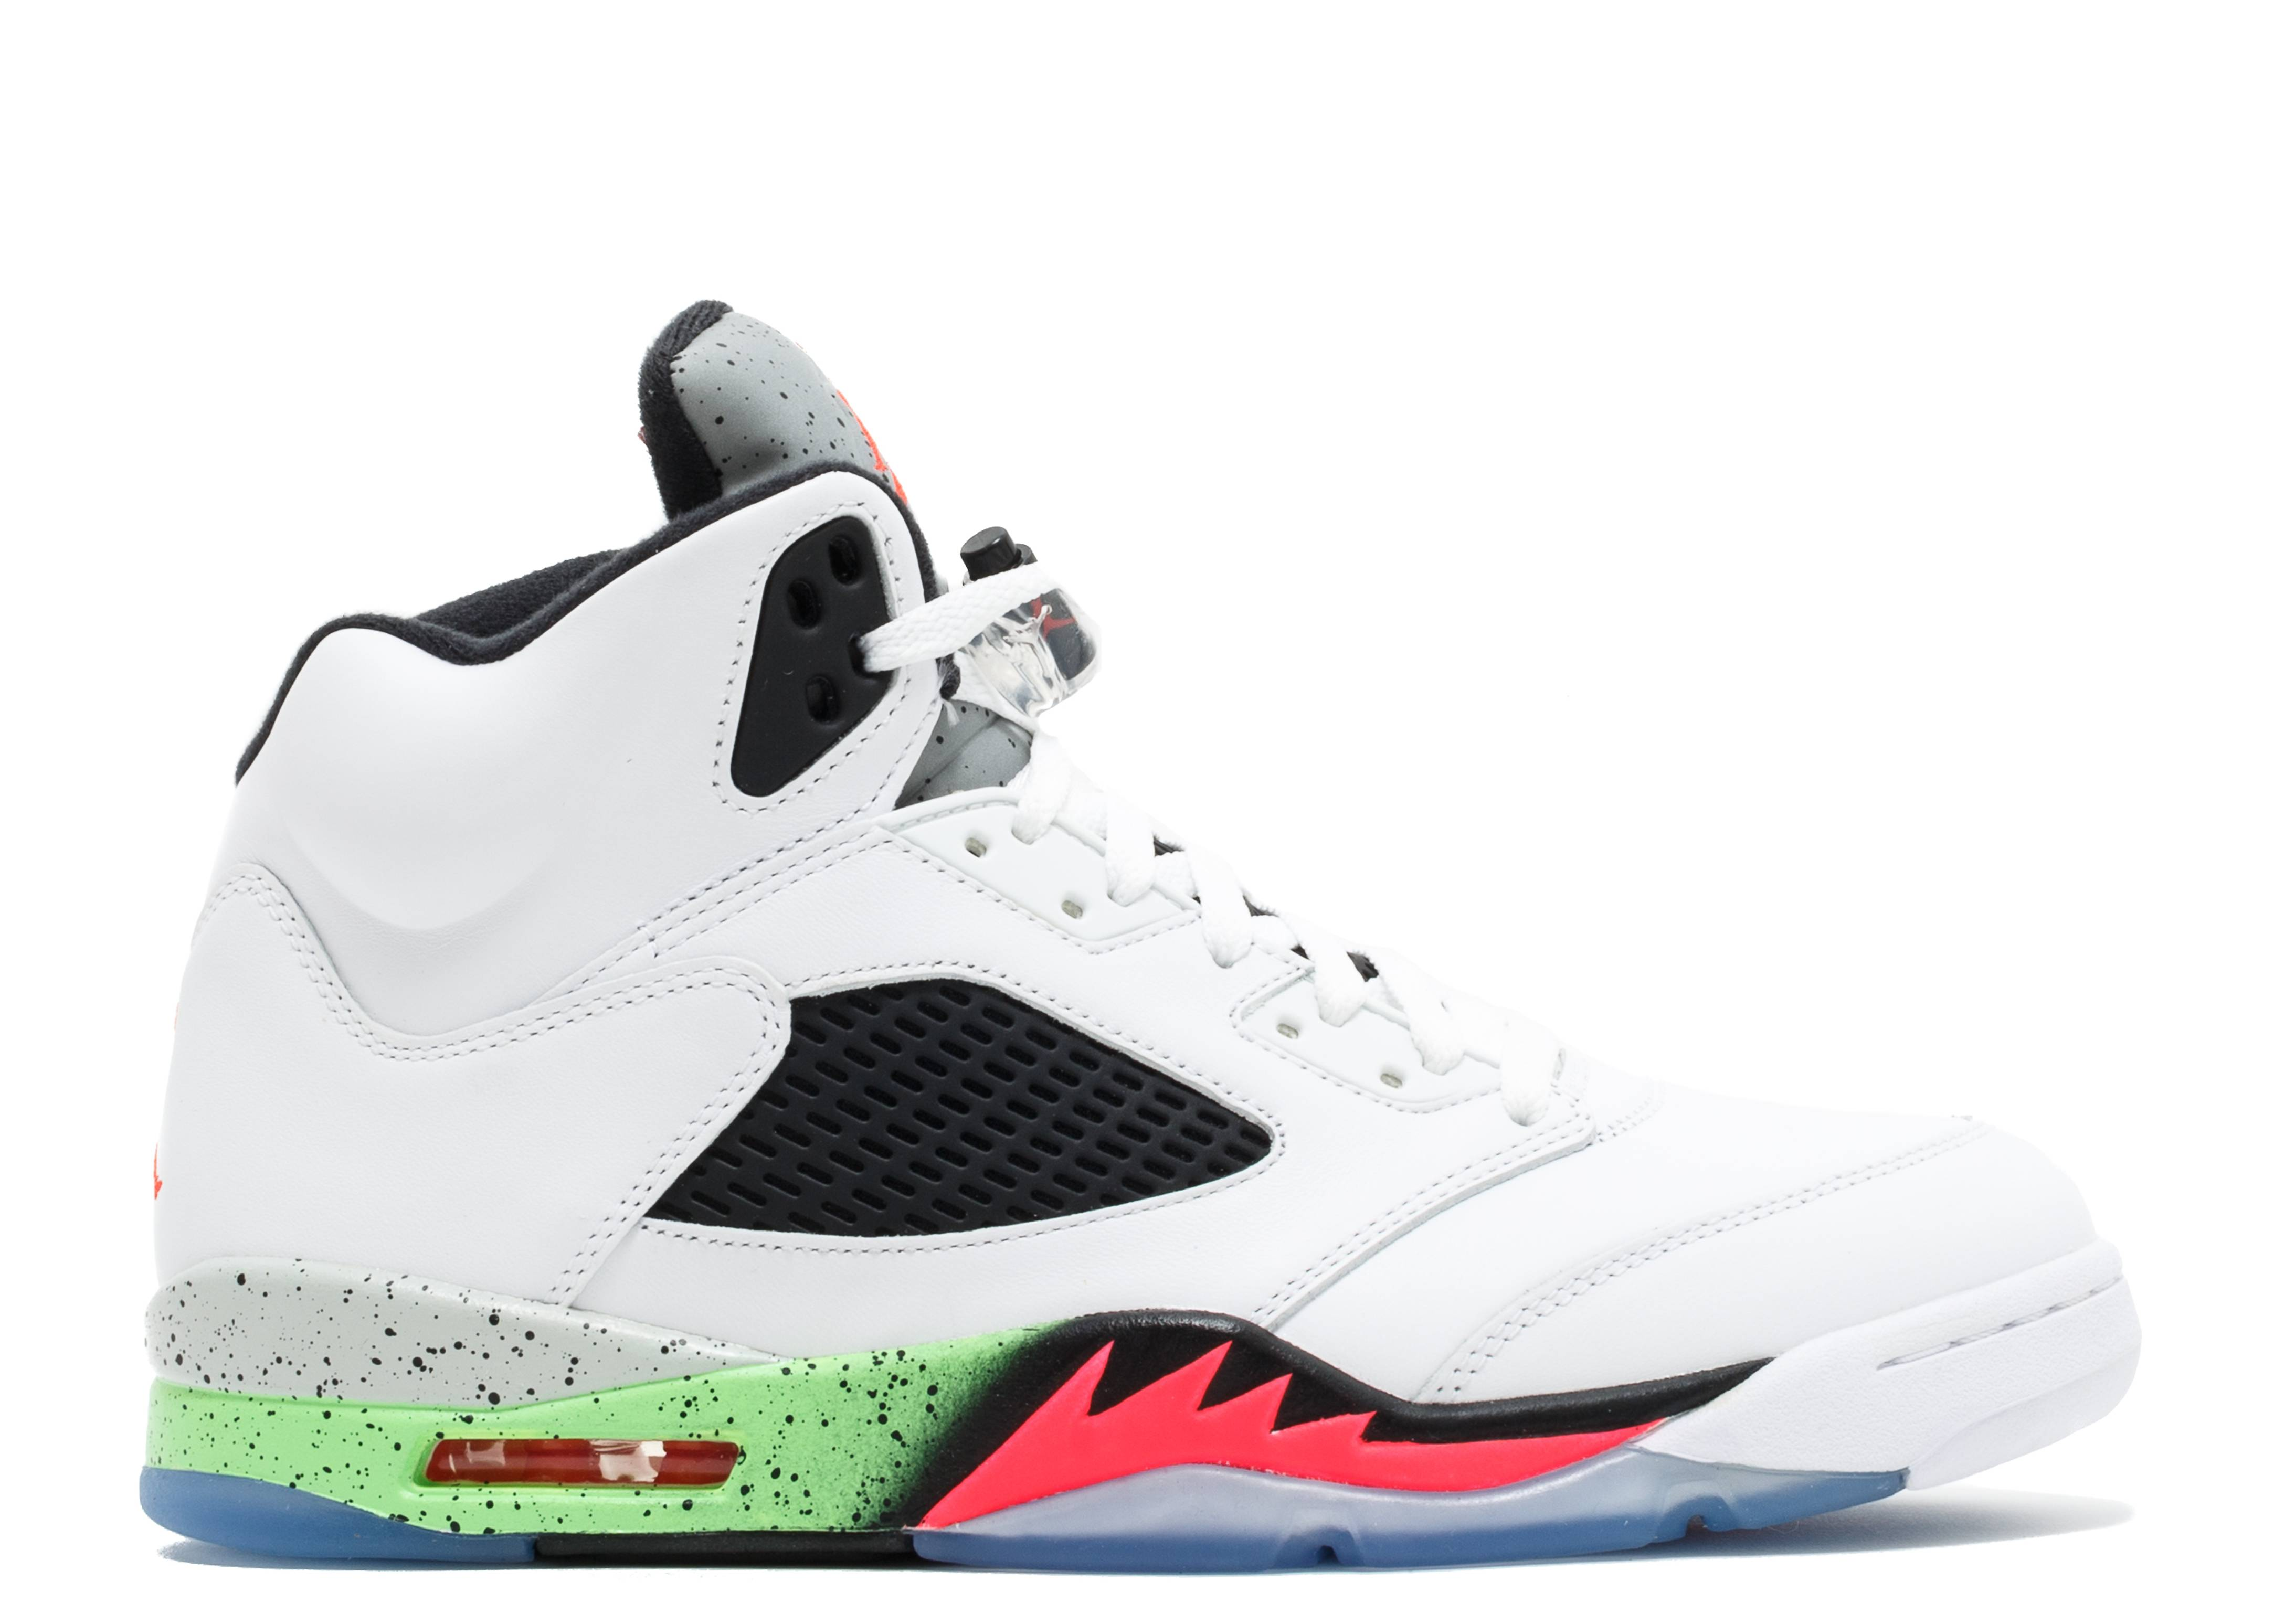 new style 12c22 00a65 coupon for sports shoesdiscount nikesonly 21.9 e97cb 3086c  best price air jordan  super fly 3 todas star urgent care sneakeroutlet 4b1e6 a16e9